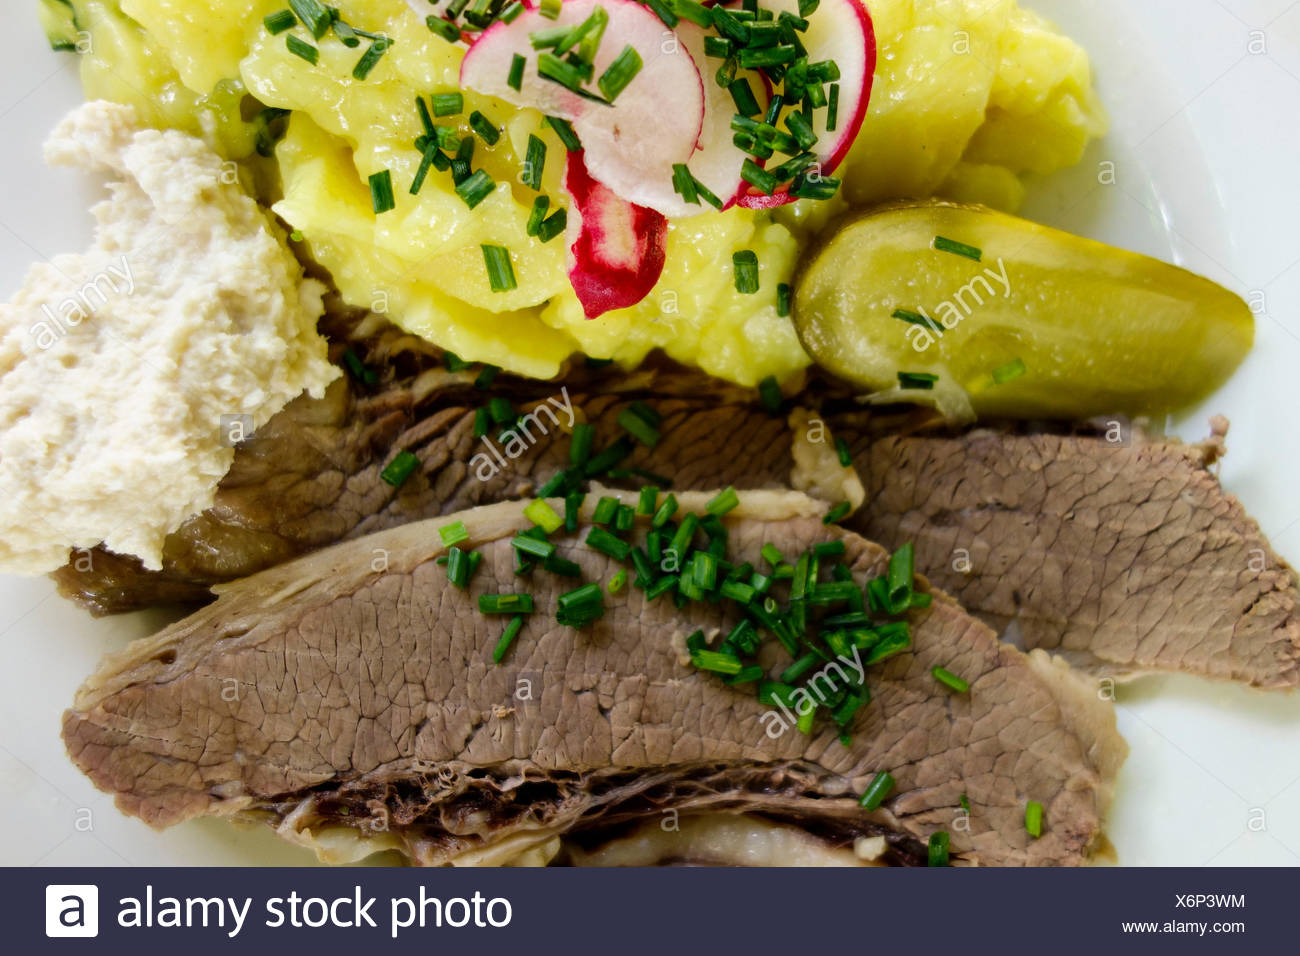 Prime boiled beef with horseradish and potato salad - Stock Image